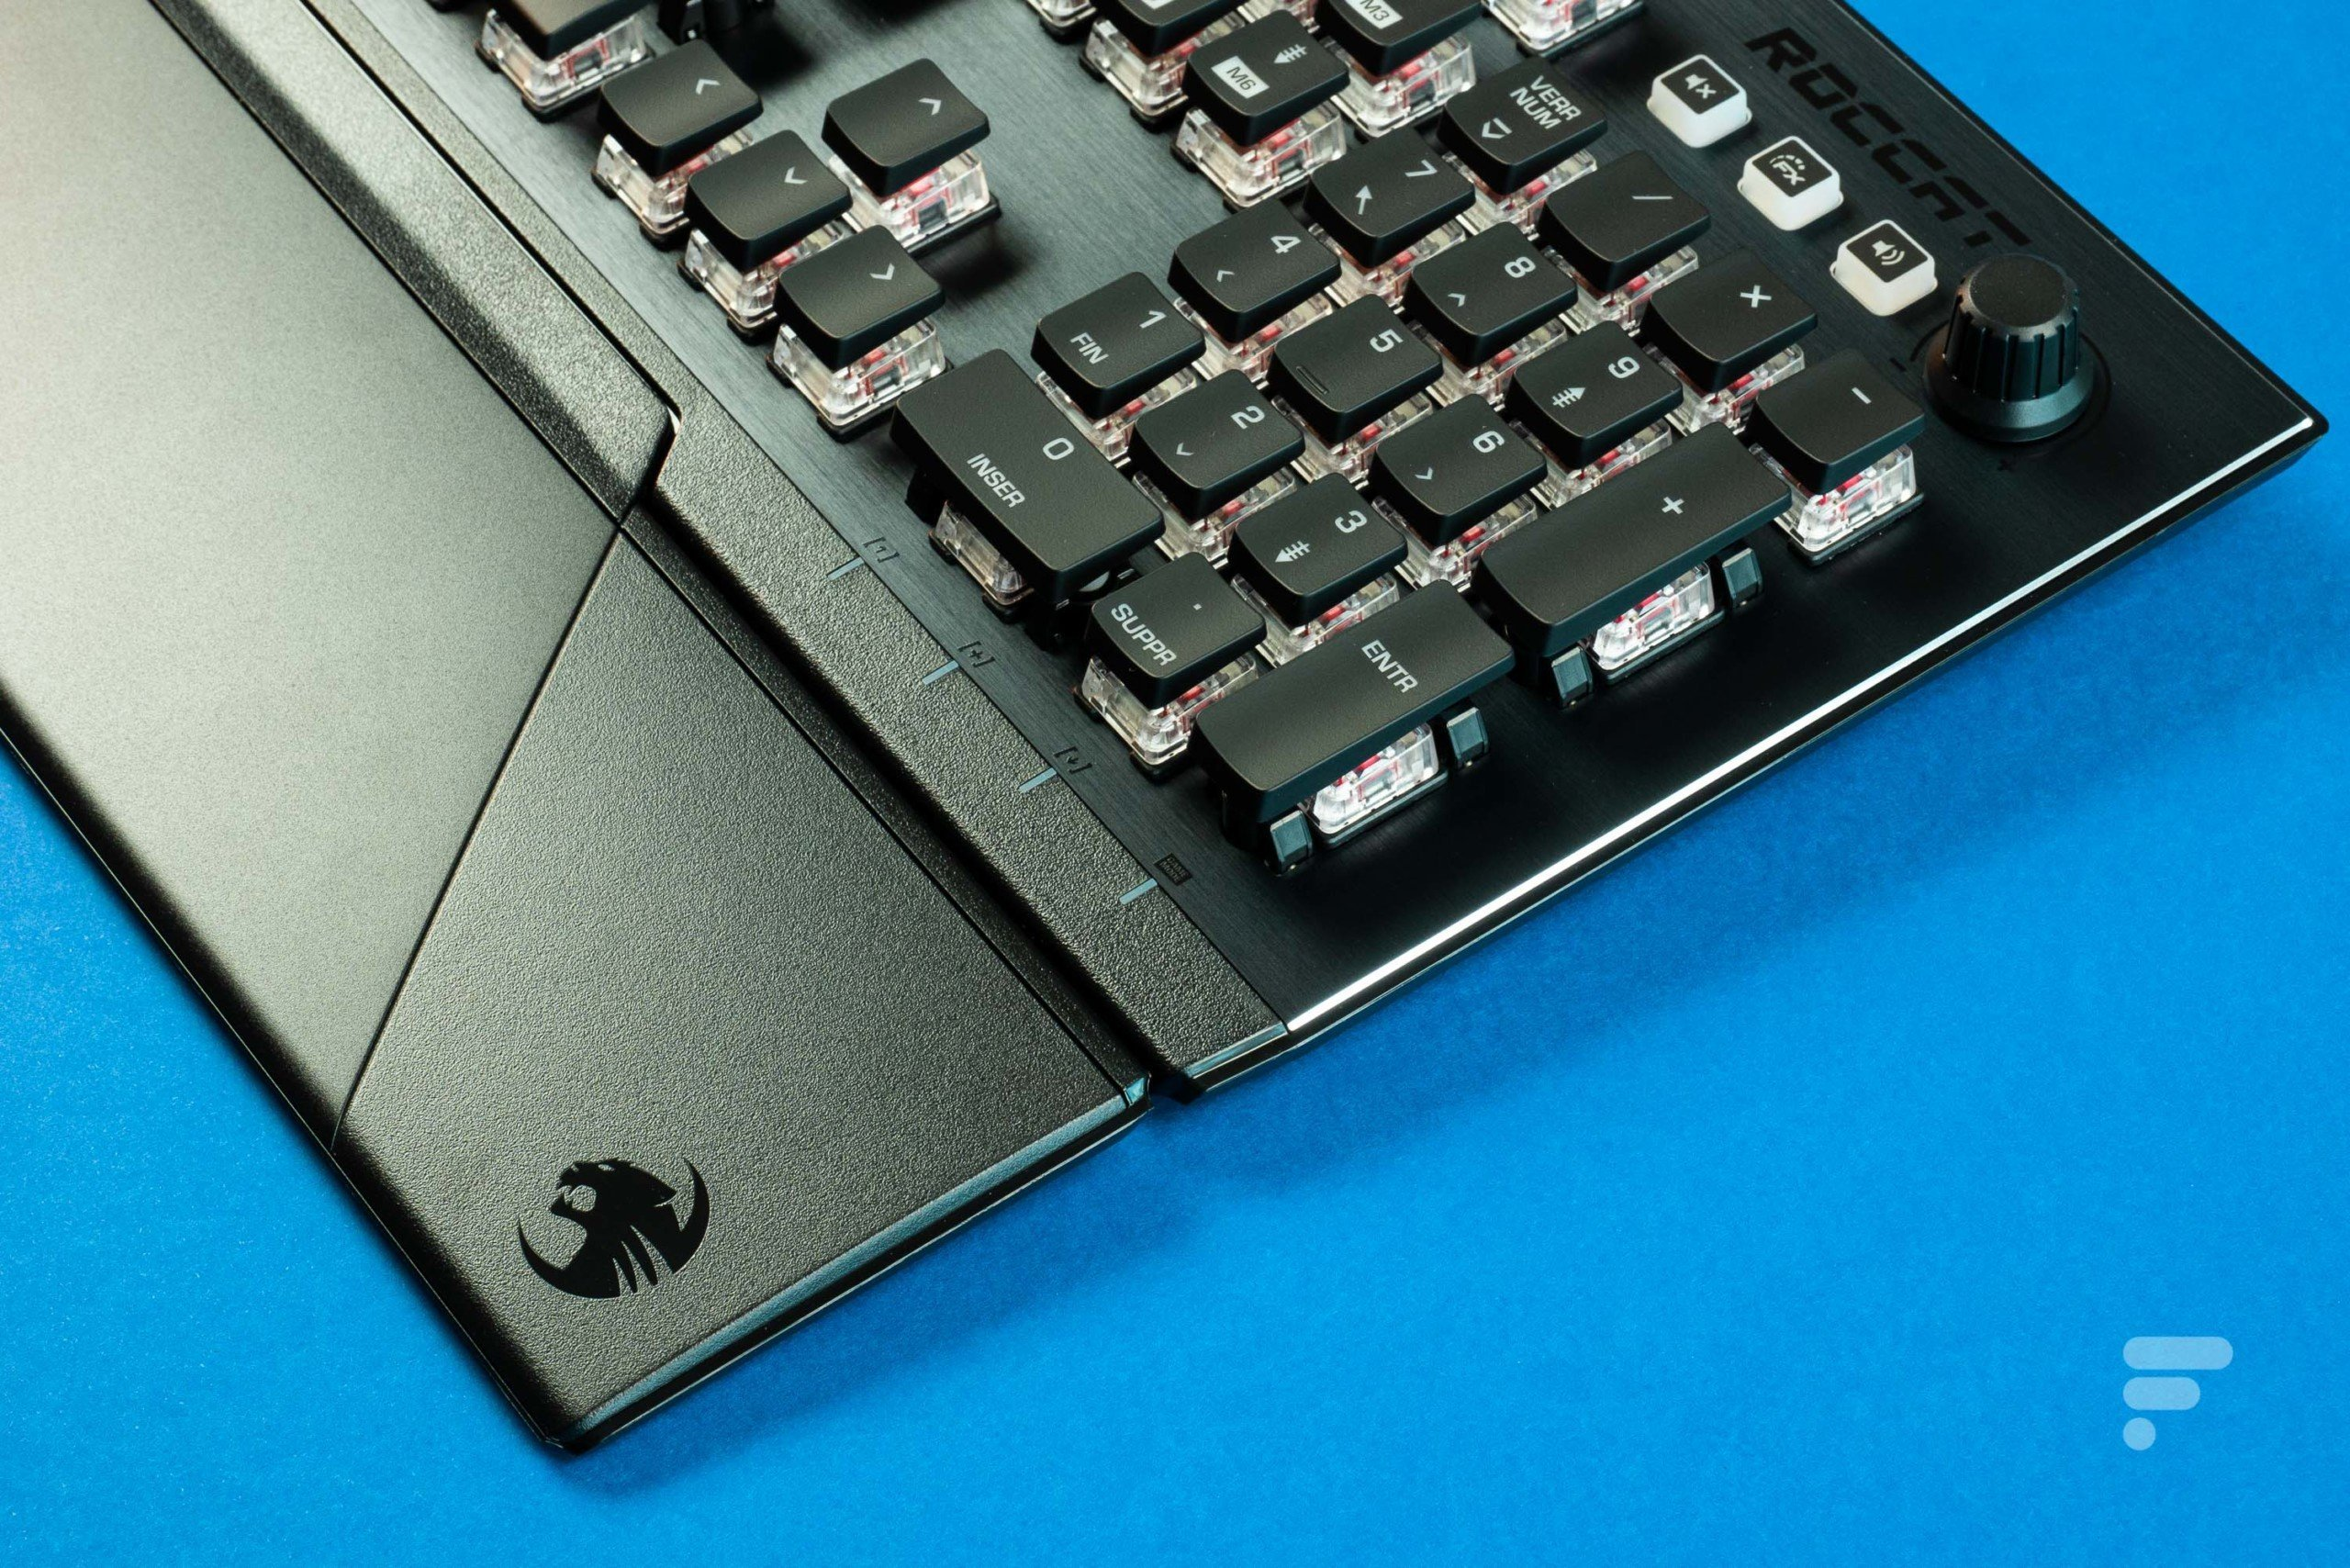 Test du clavier Roccat Vulcan 121 : le design et les performances